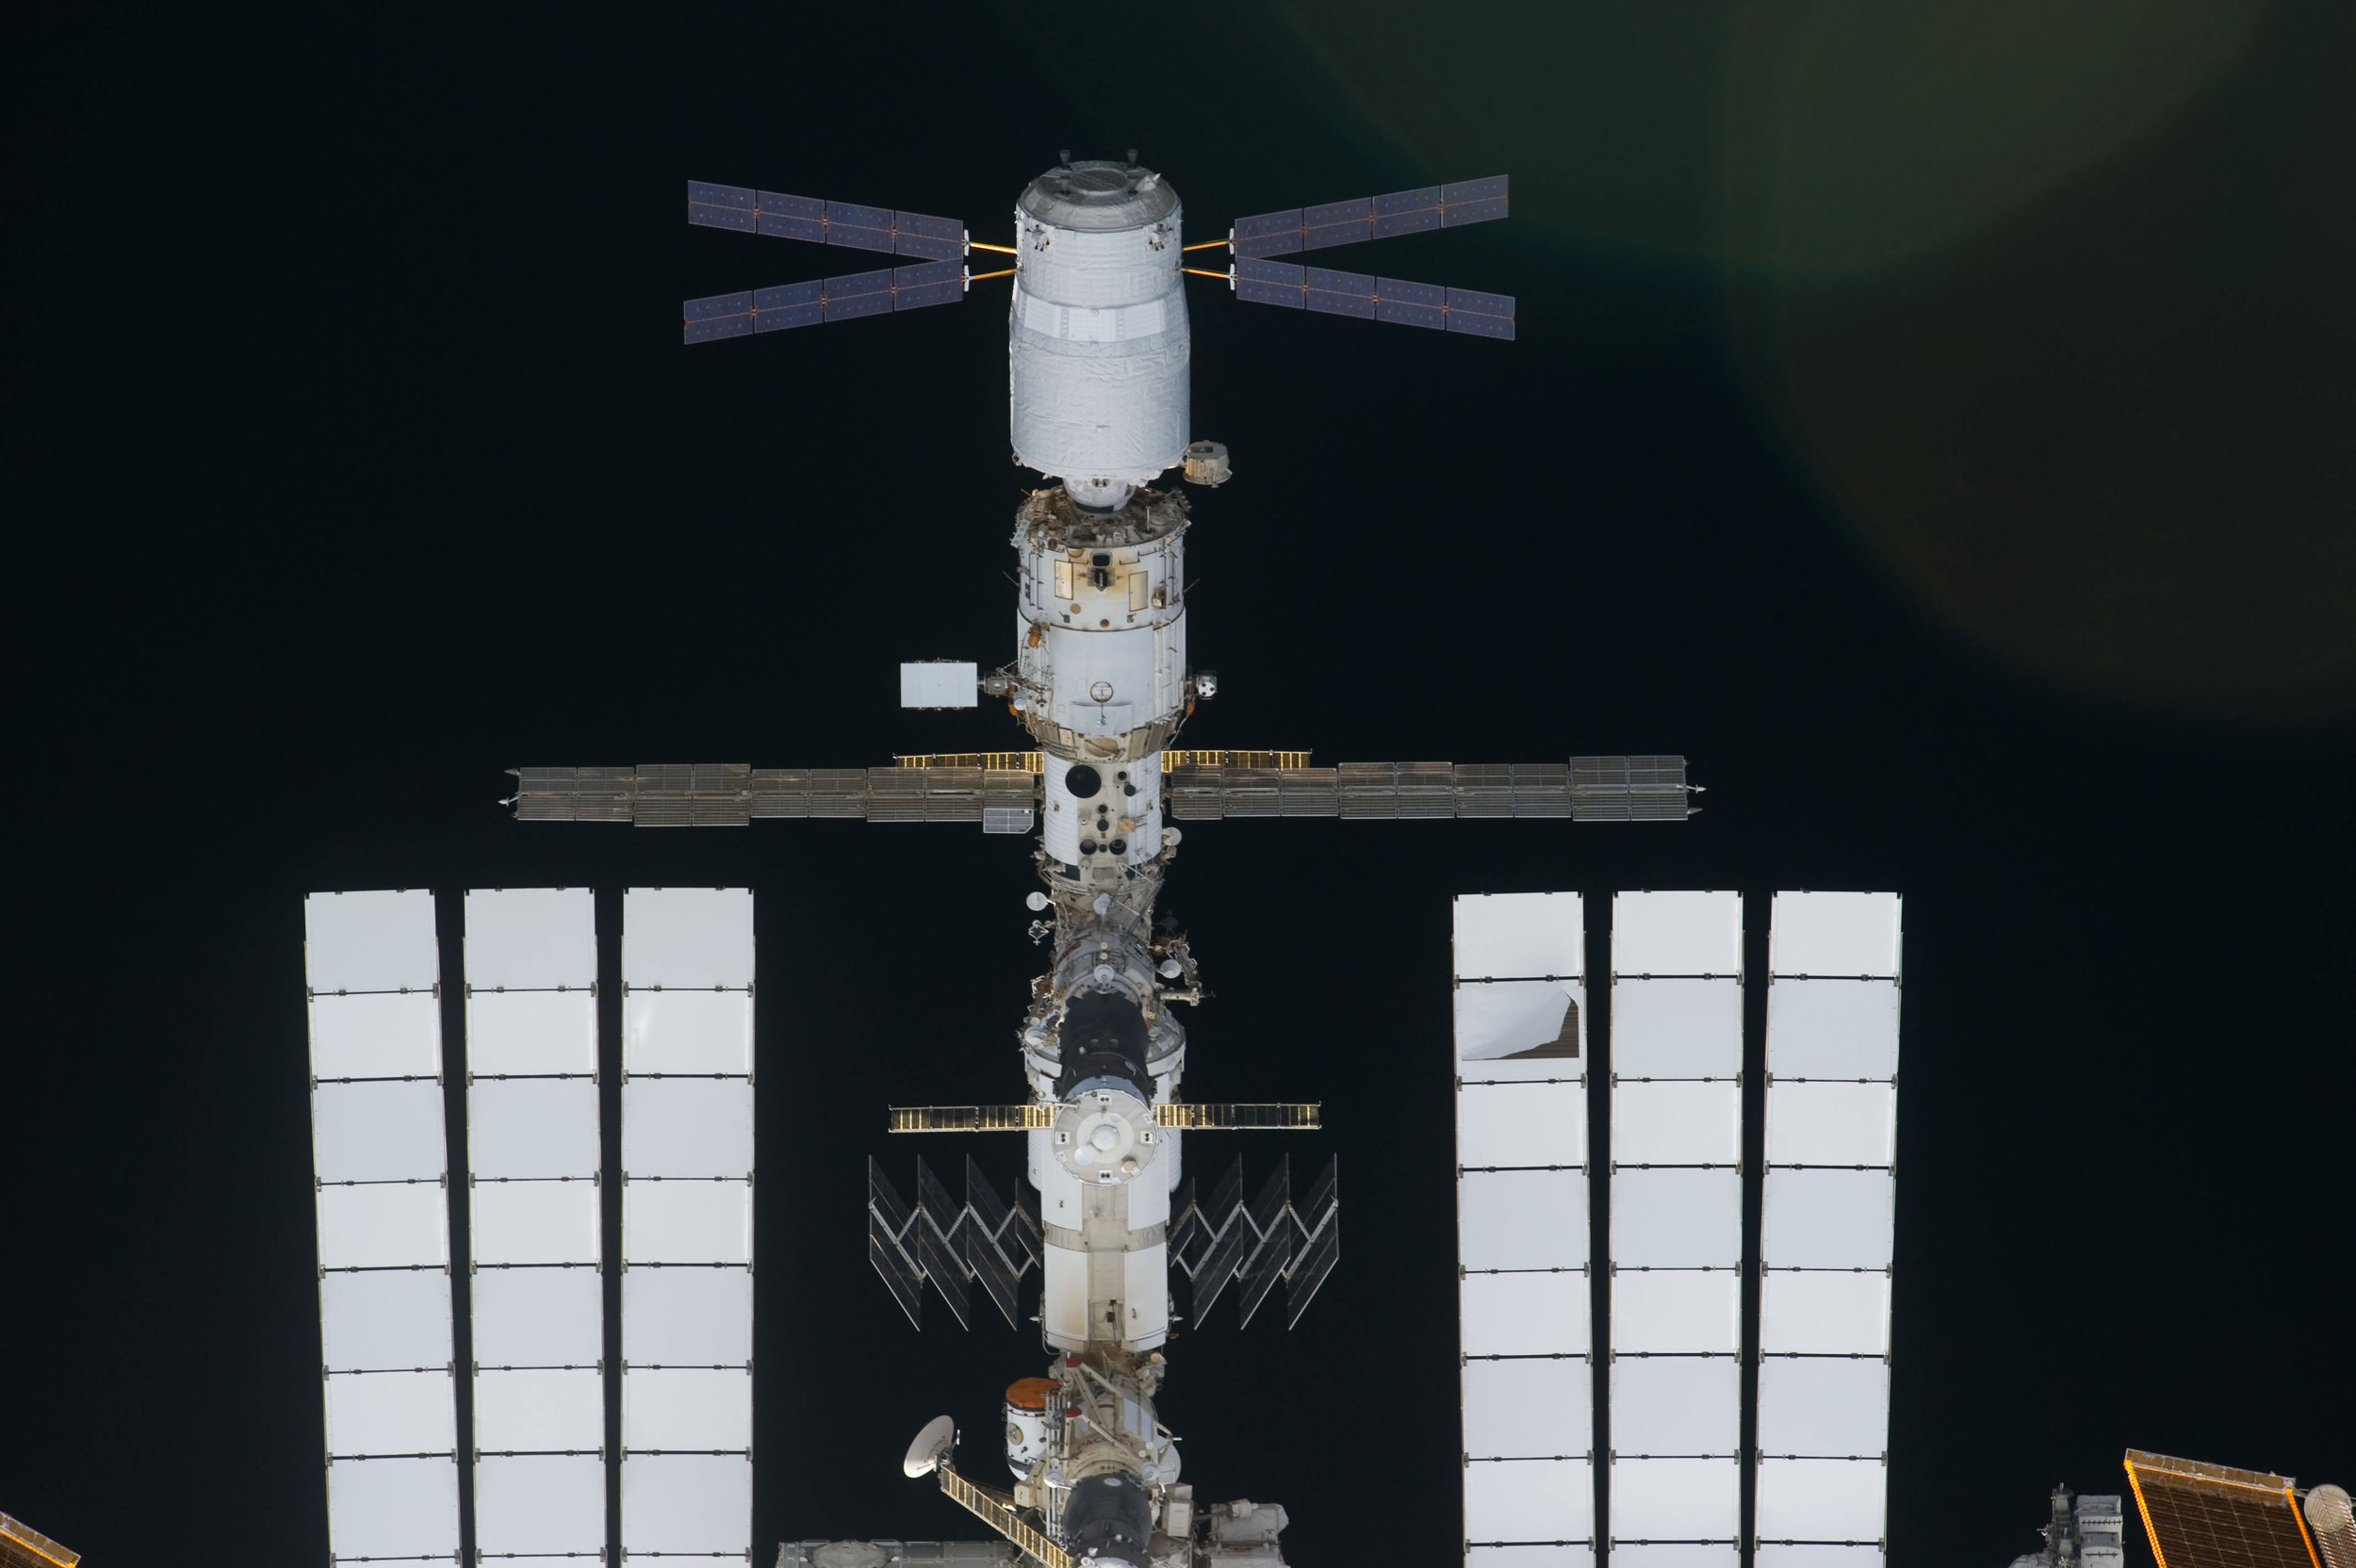 A view of the Russian Orbital Segment outpost with ATV docked. Photo Credit: NASA